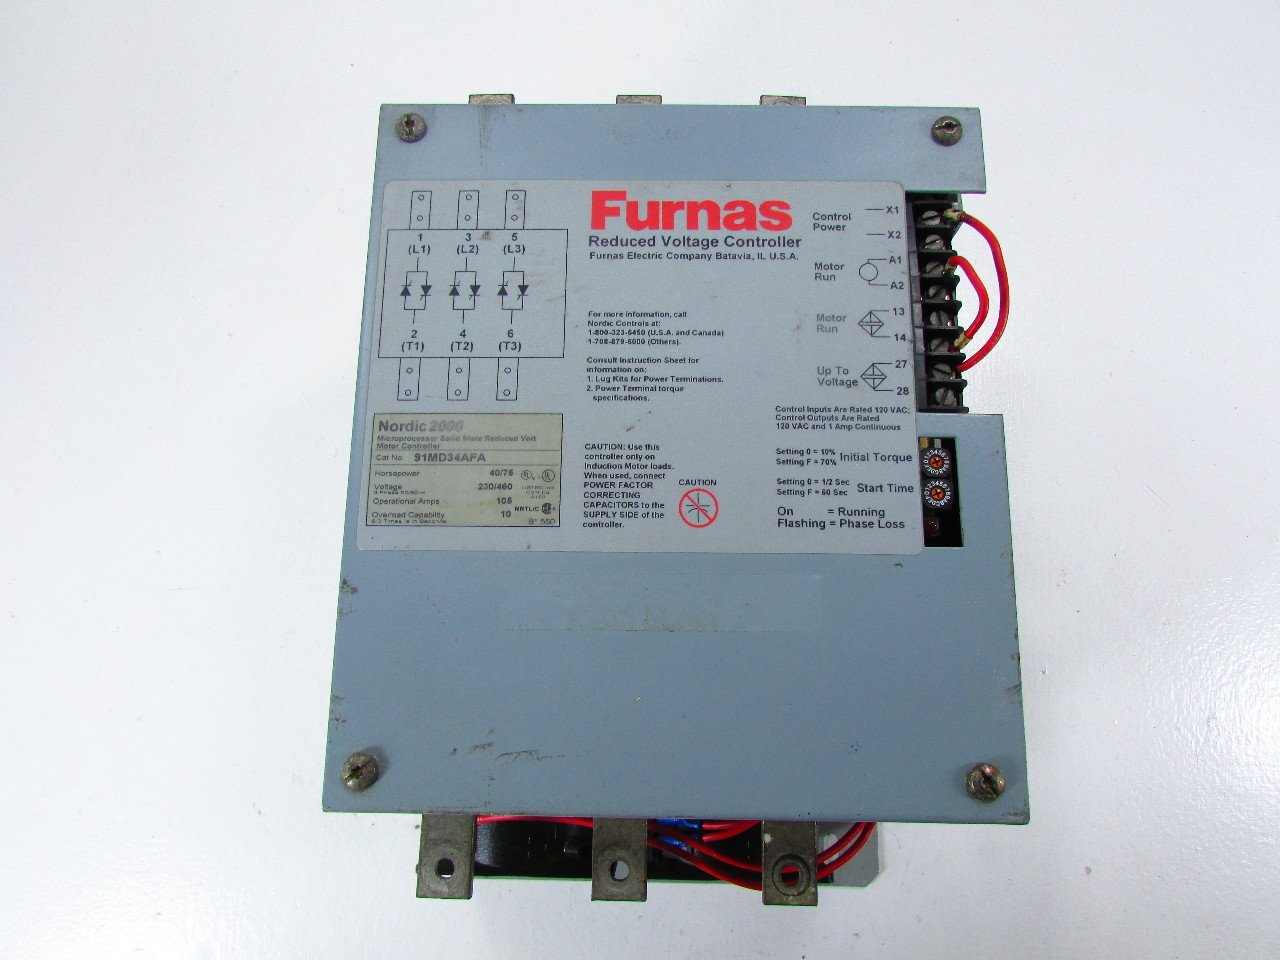 FURNAS NORDIC 2000 91MD34AFA MICROPROCESSOR SOLID STATE ...